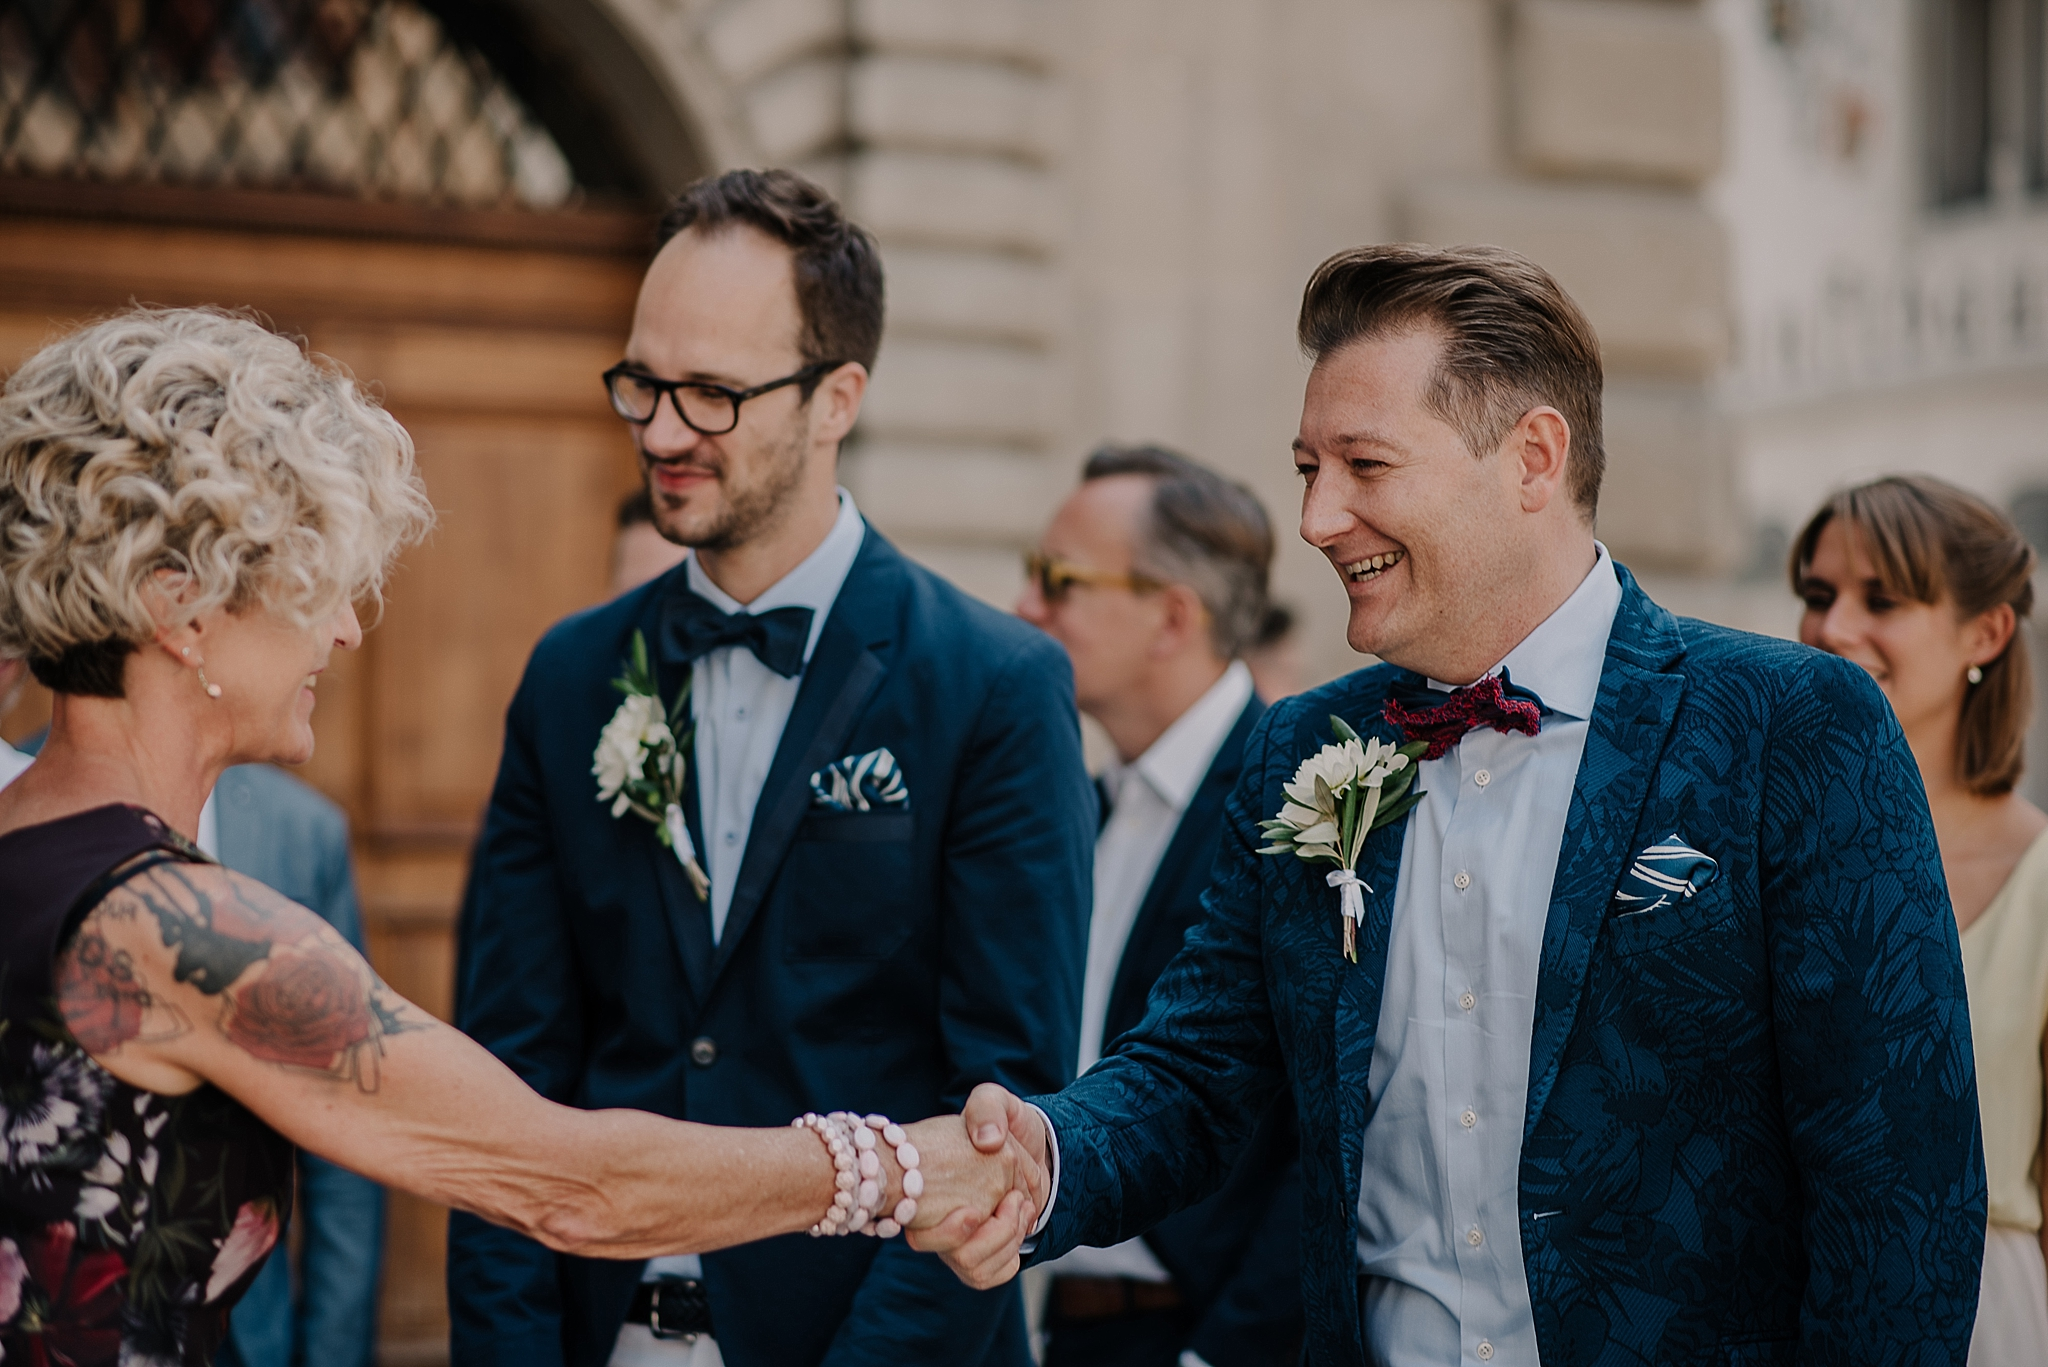 luzern lucerne standesamtliche hochzeit schweiz switzerland standesamt see civil wedding gay homosexual lgbt photographer hochzeitsfotograf münchen munich photos queer